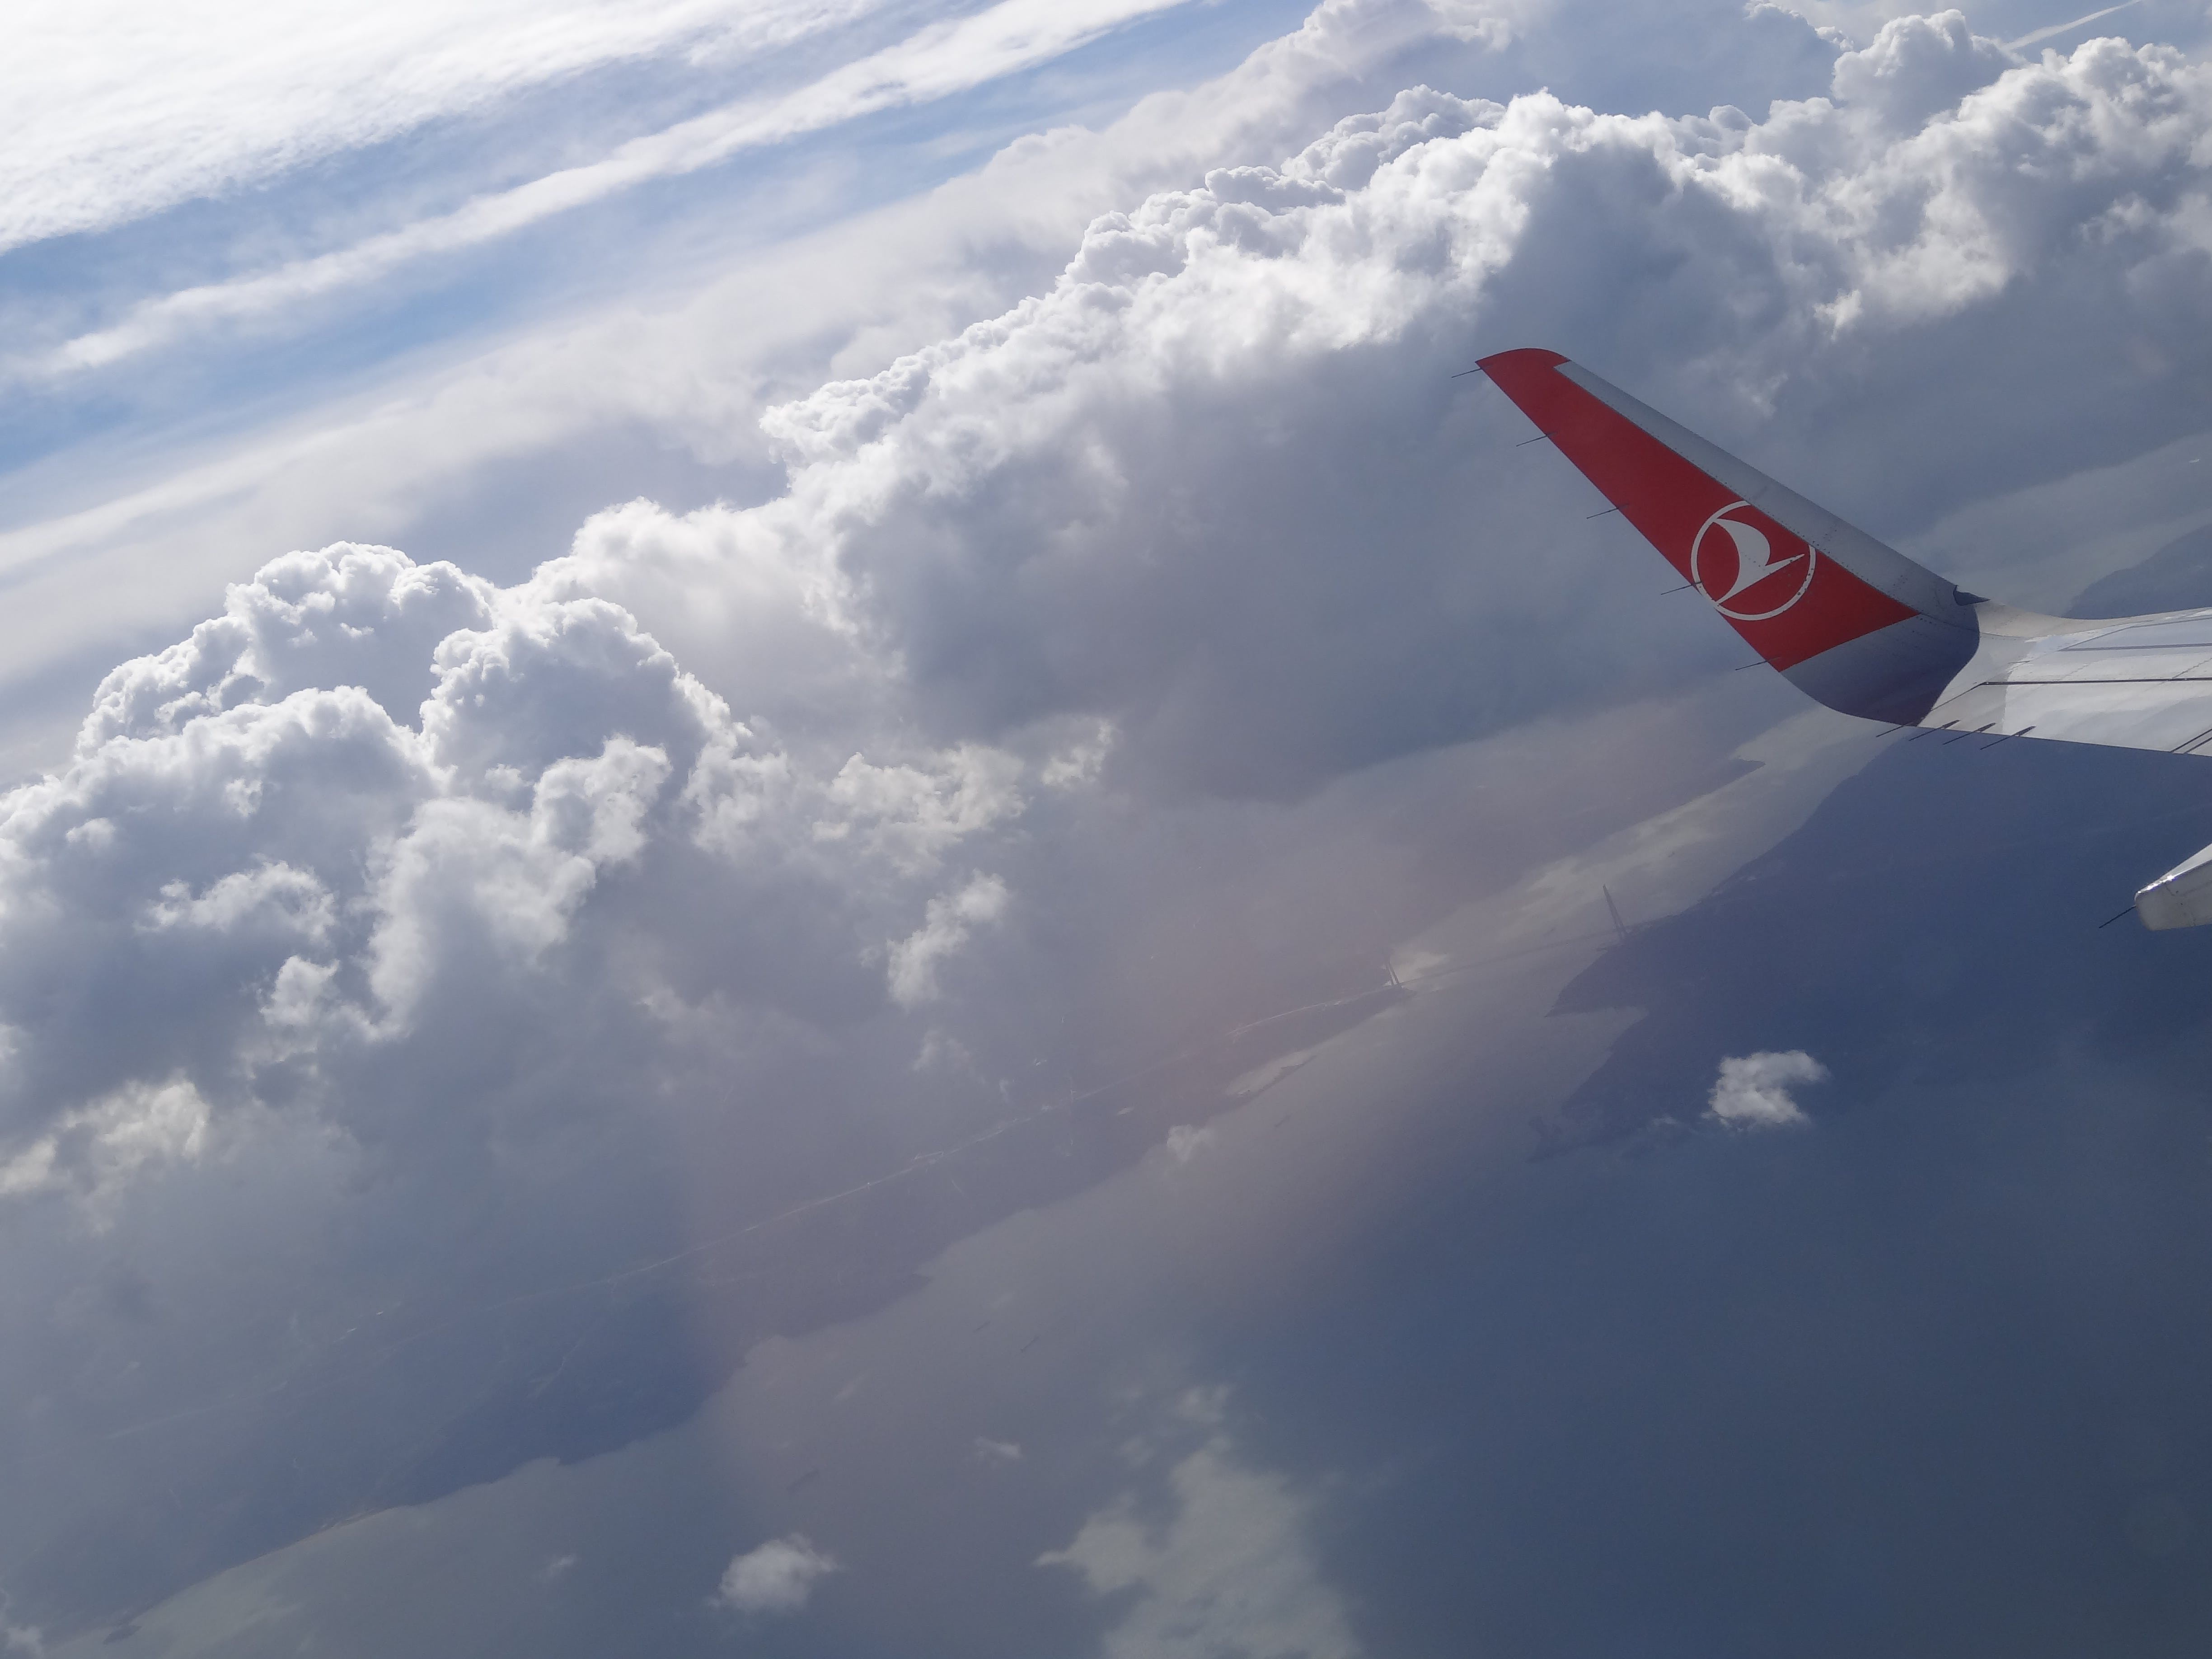 Free stock photo of airplane, cloud, clouds, flight